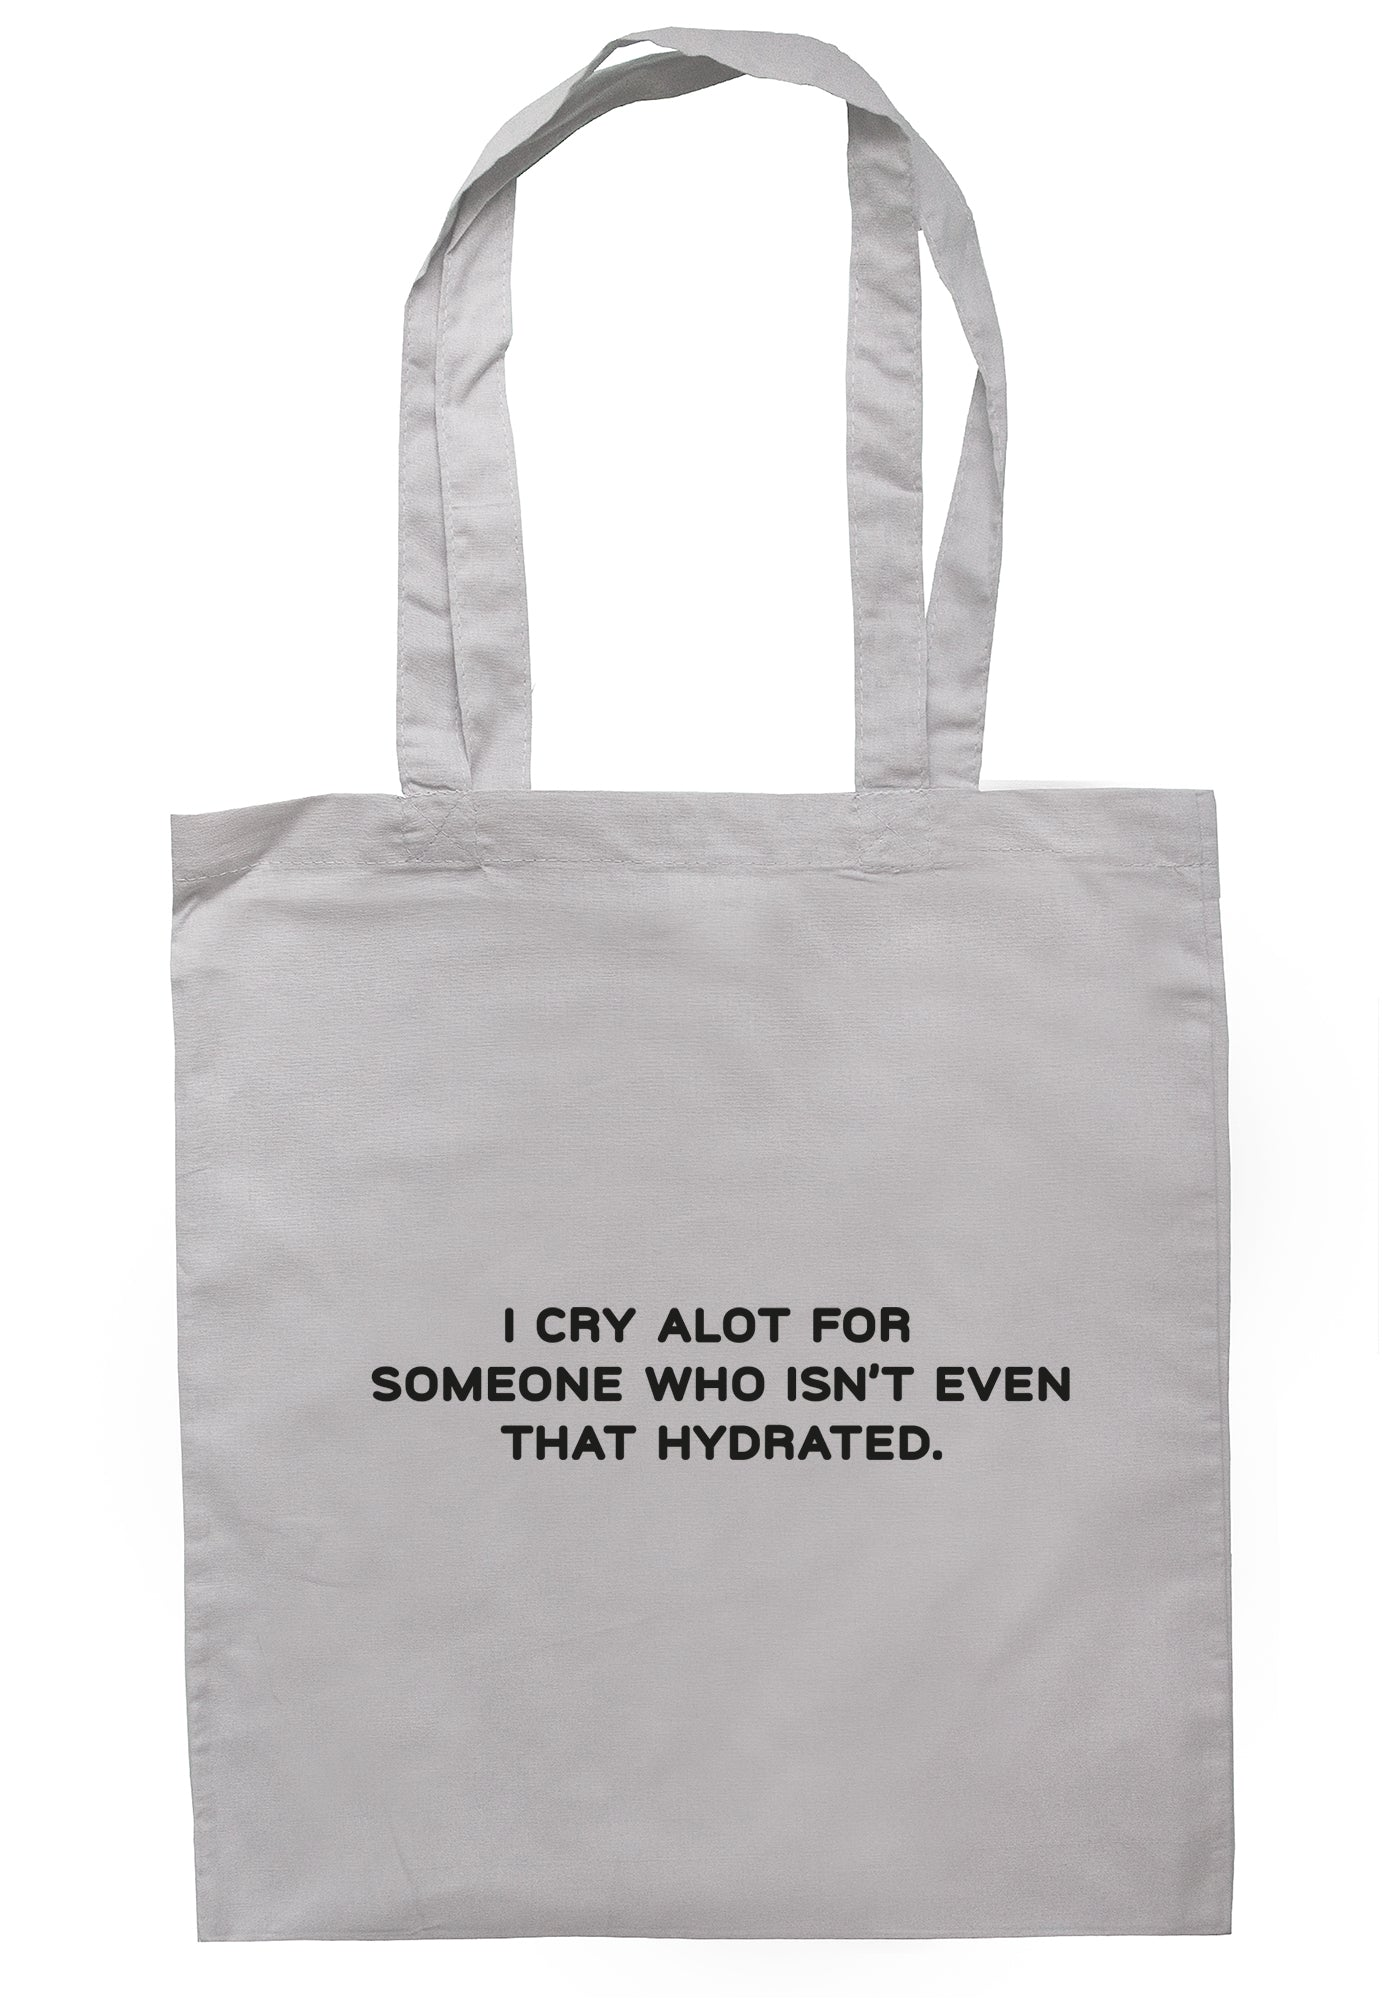 I Cry Alot For Someone Who Isn't Even That Hydrated Tote Bag S1157 - Illustrated Identity Ltd.